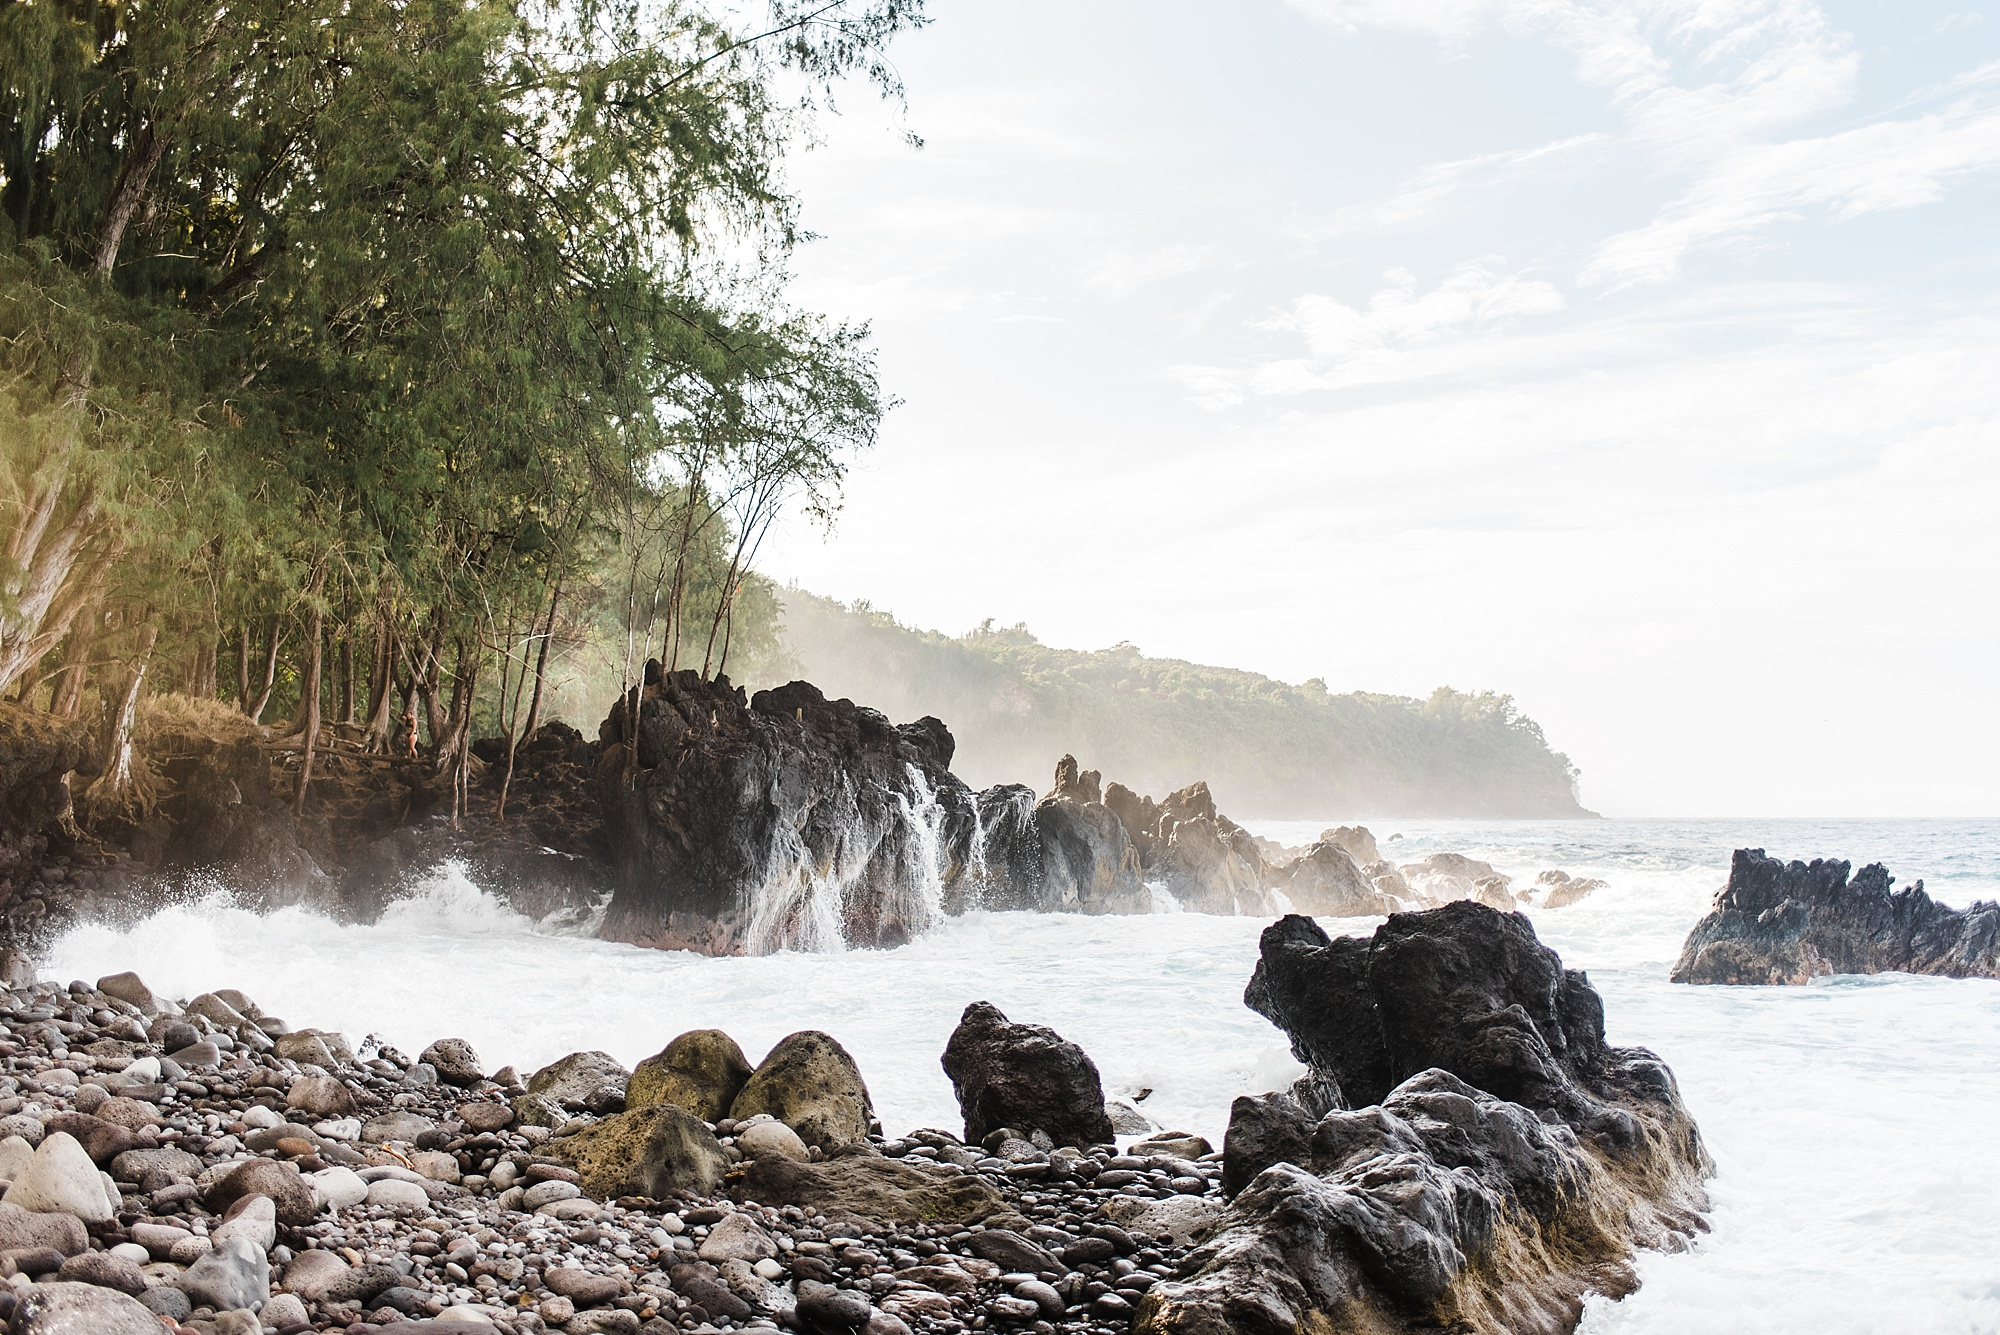 Photo of Laupahoehoe Beach Park during golden hour, taken by Laura Lango of Forthright Photo